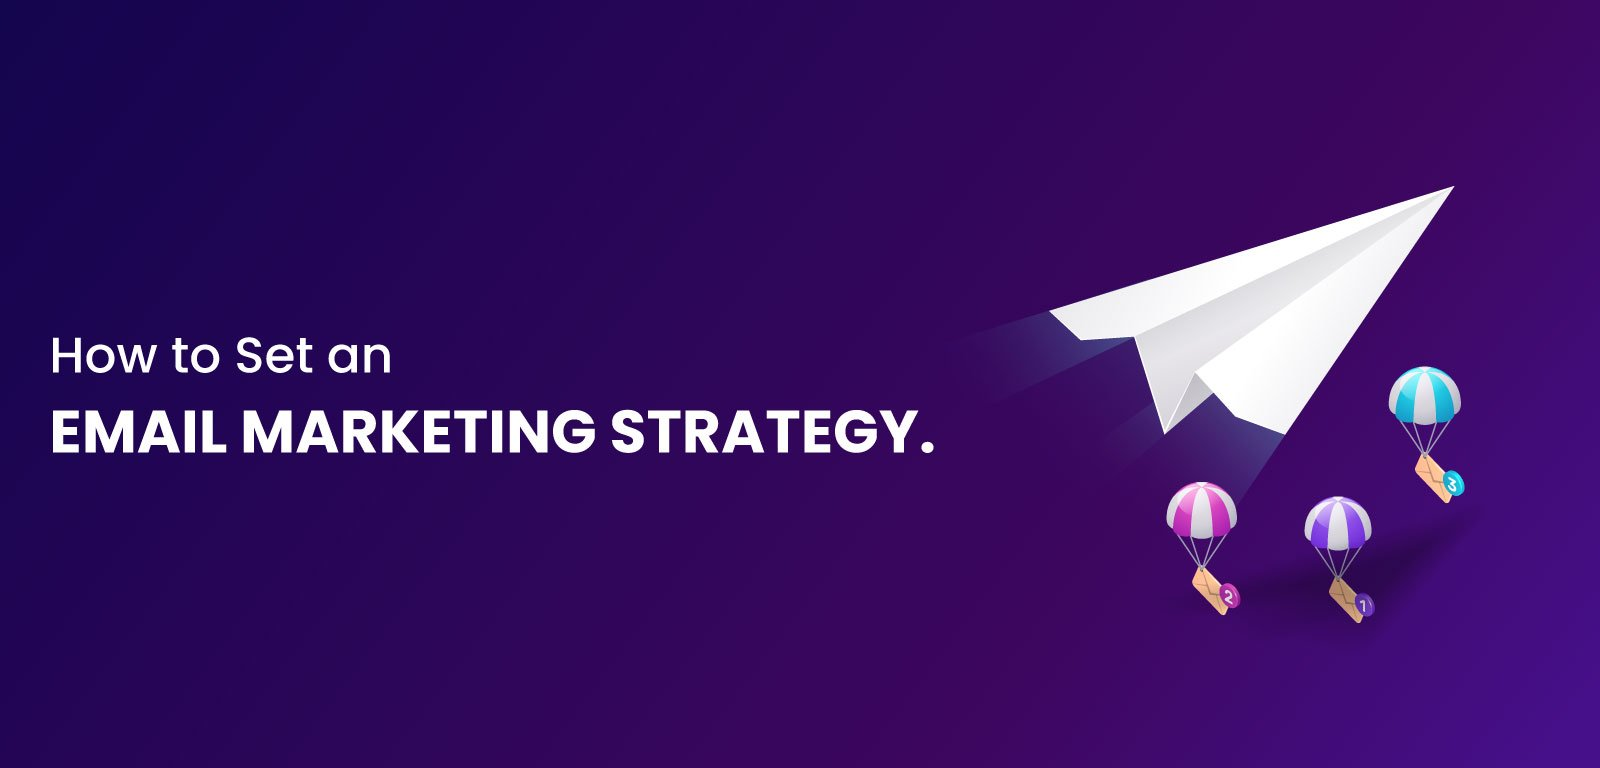 How to set an email marketing strategy?